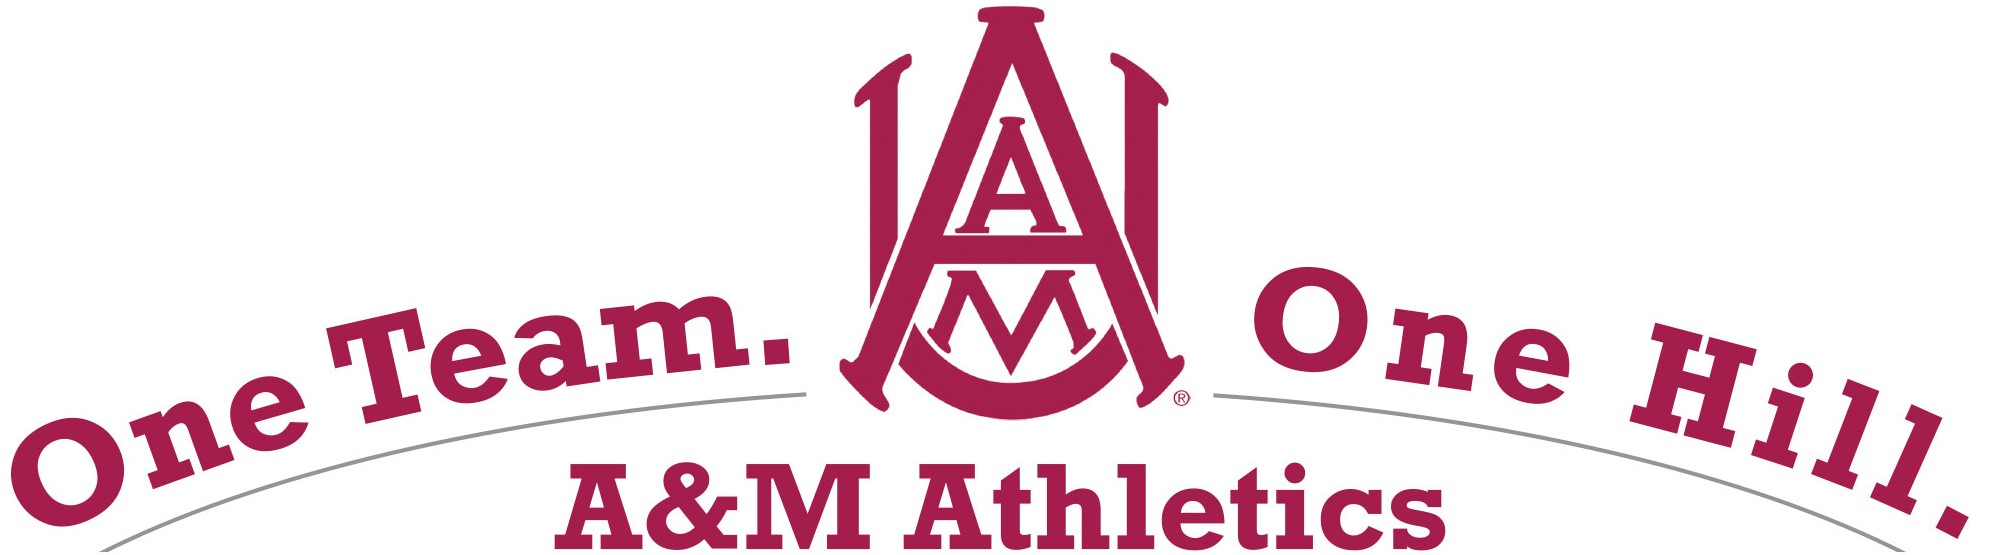 Alabama A&M Ticketing | Athletics